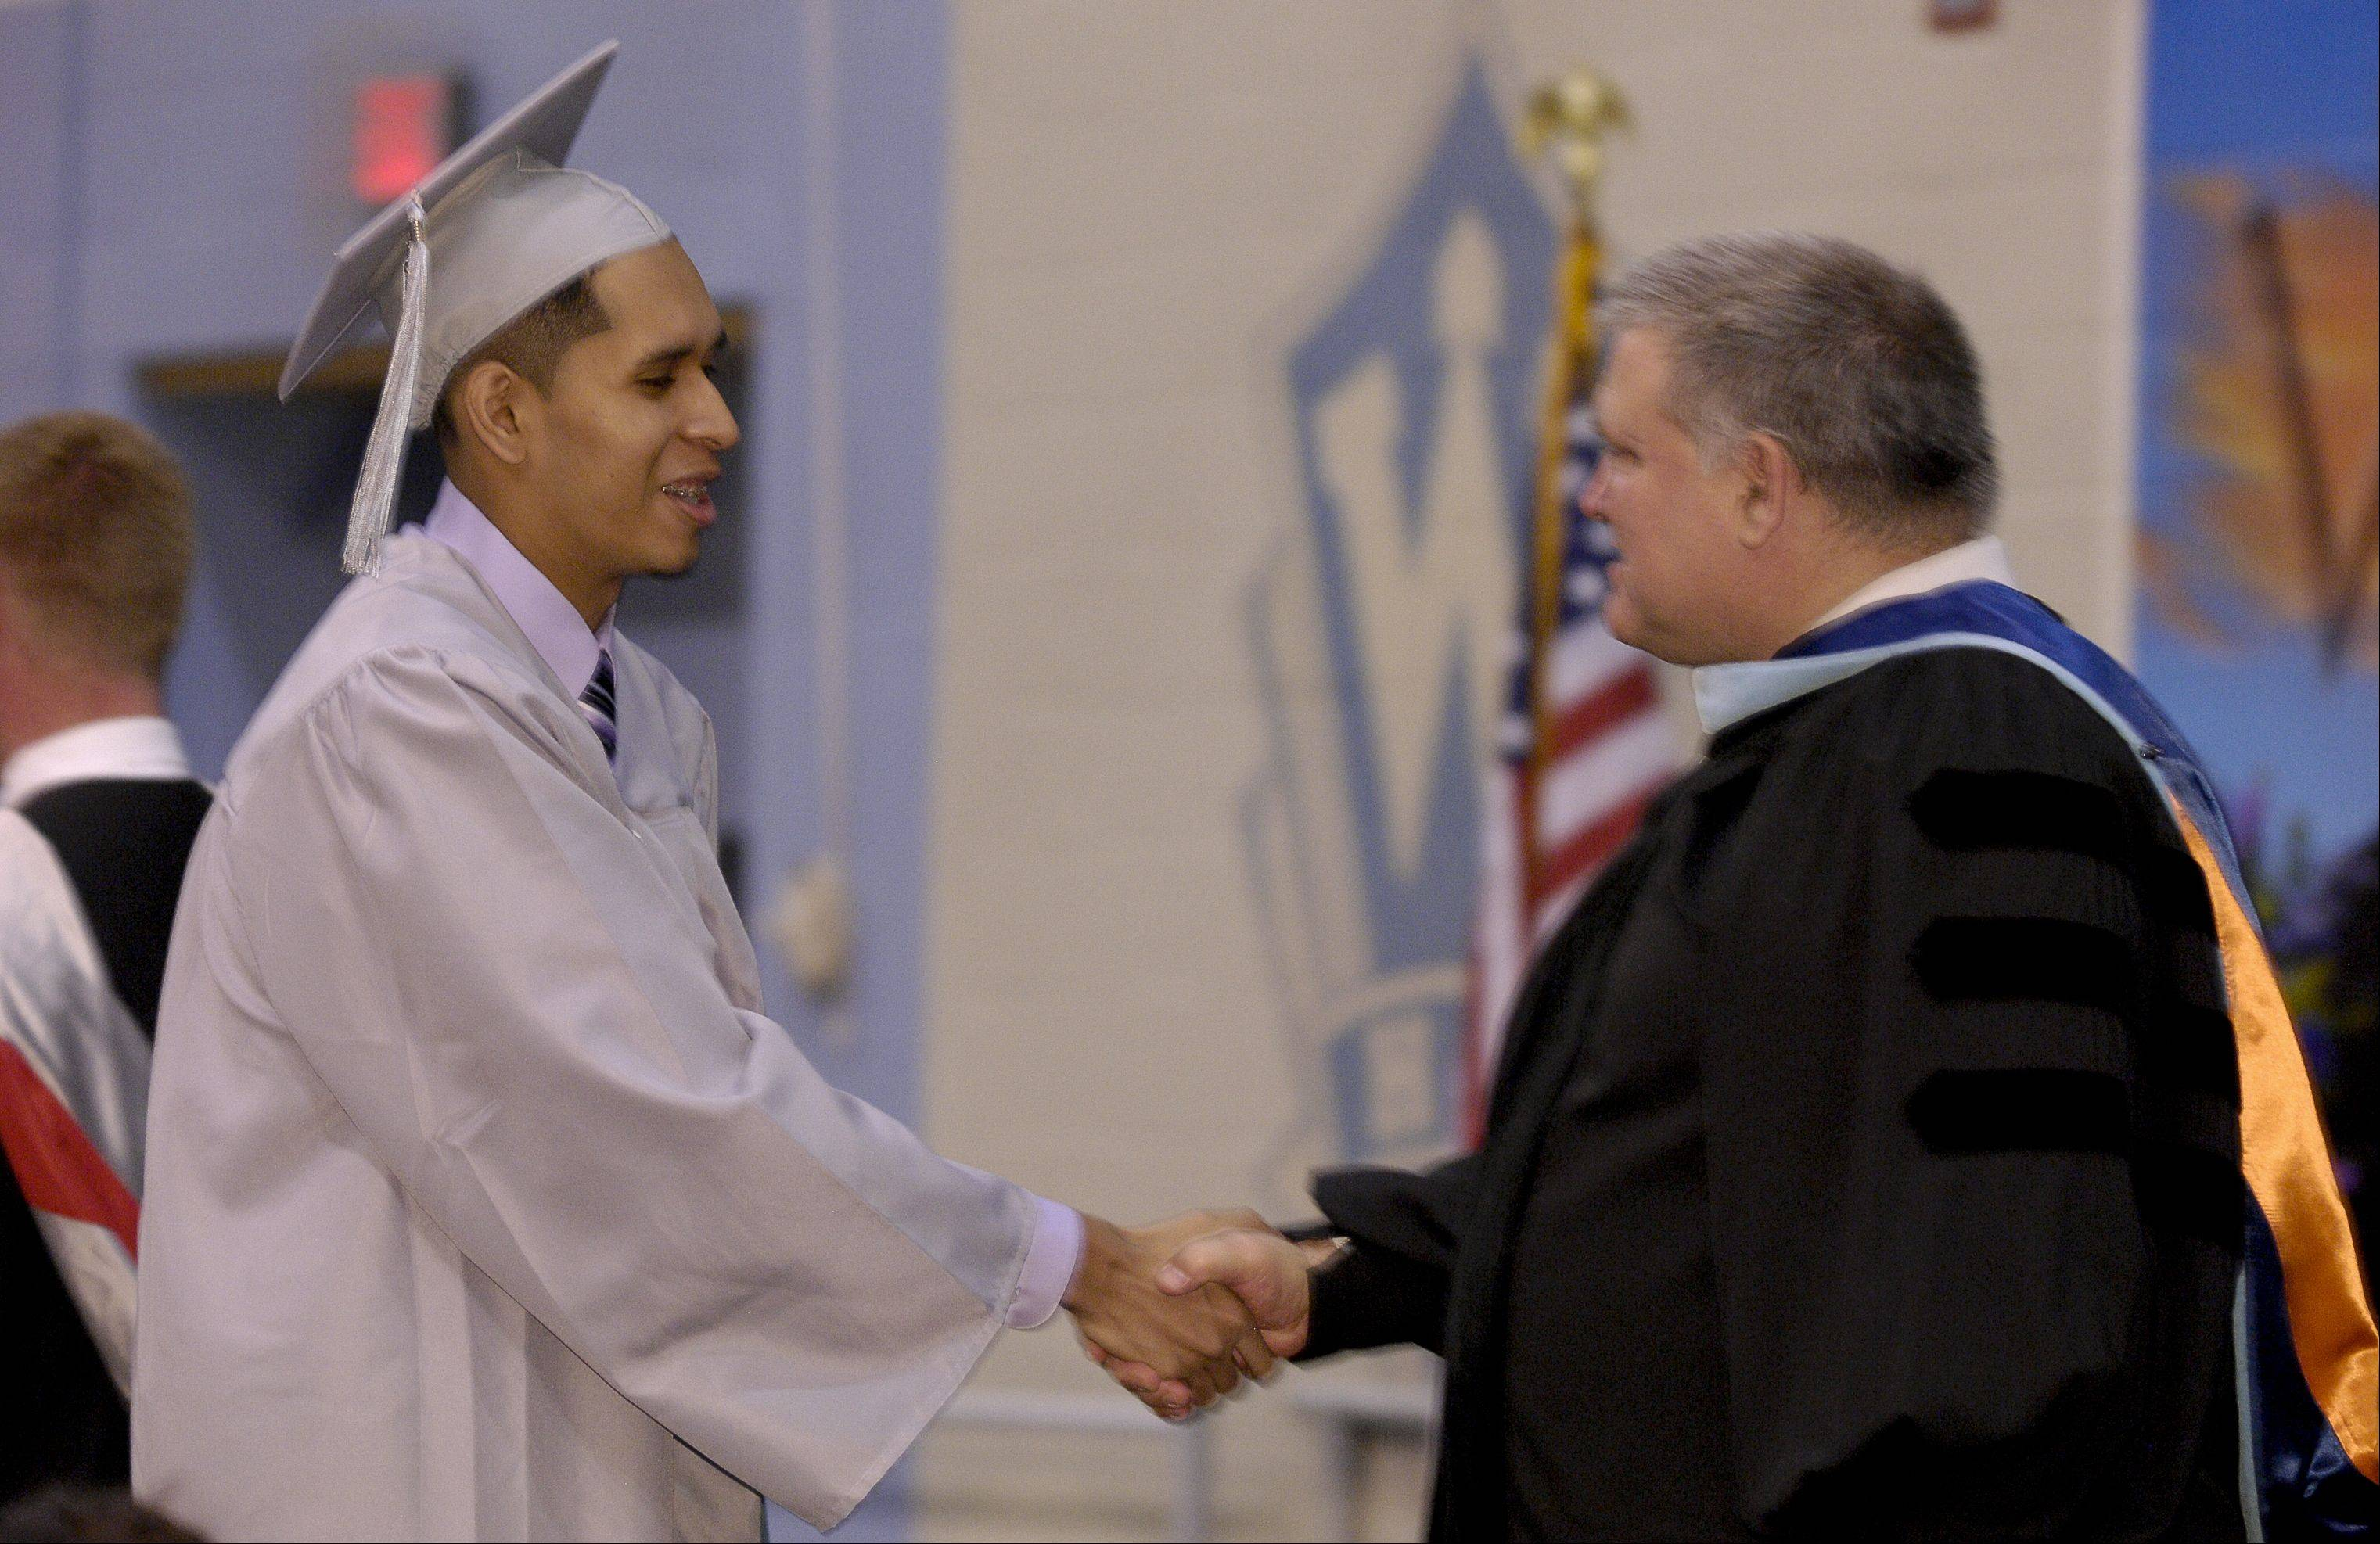 Images from the Willowbrook High School graduation on Sunday, June 9 at the school.